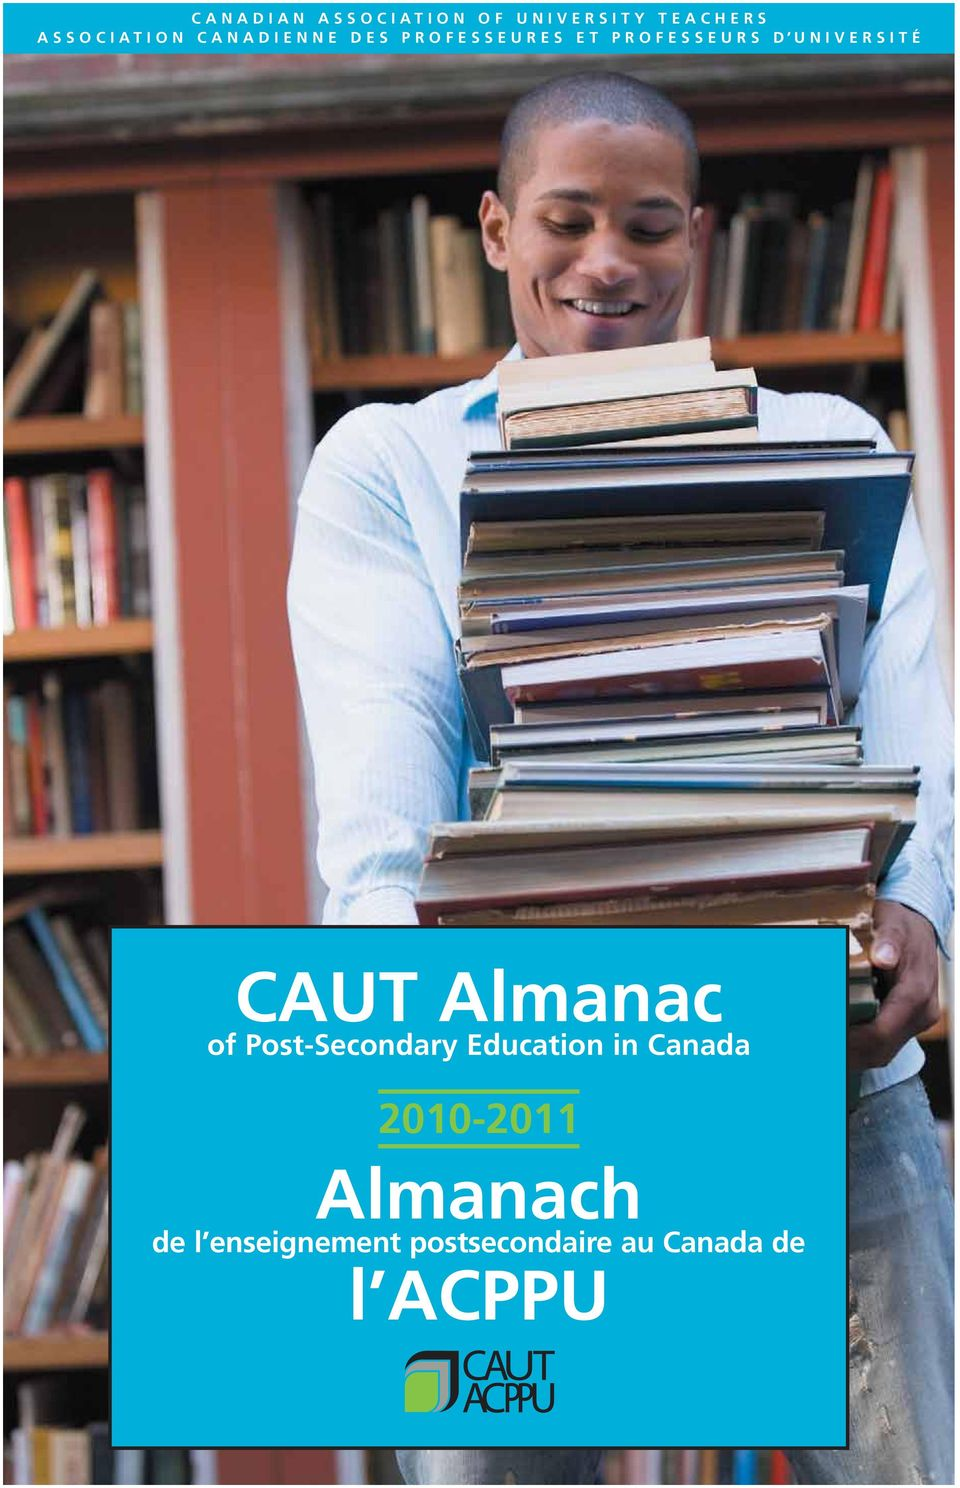 CAUT Almanac of Post-Secondary Education in Canada